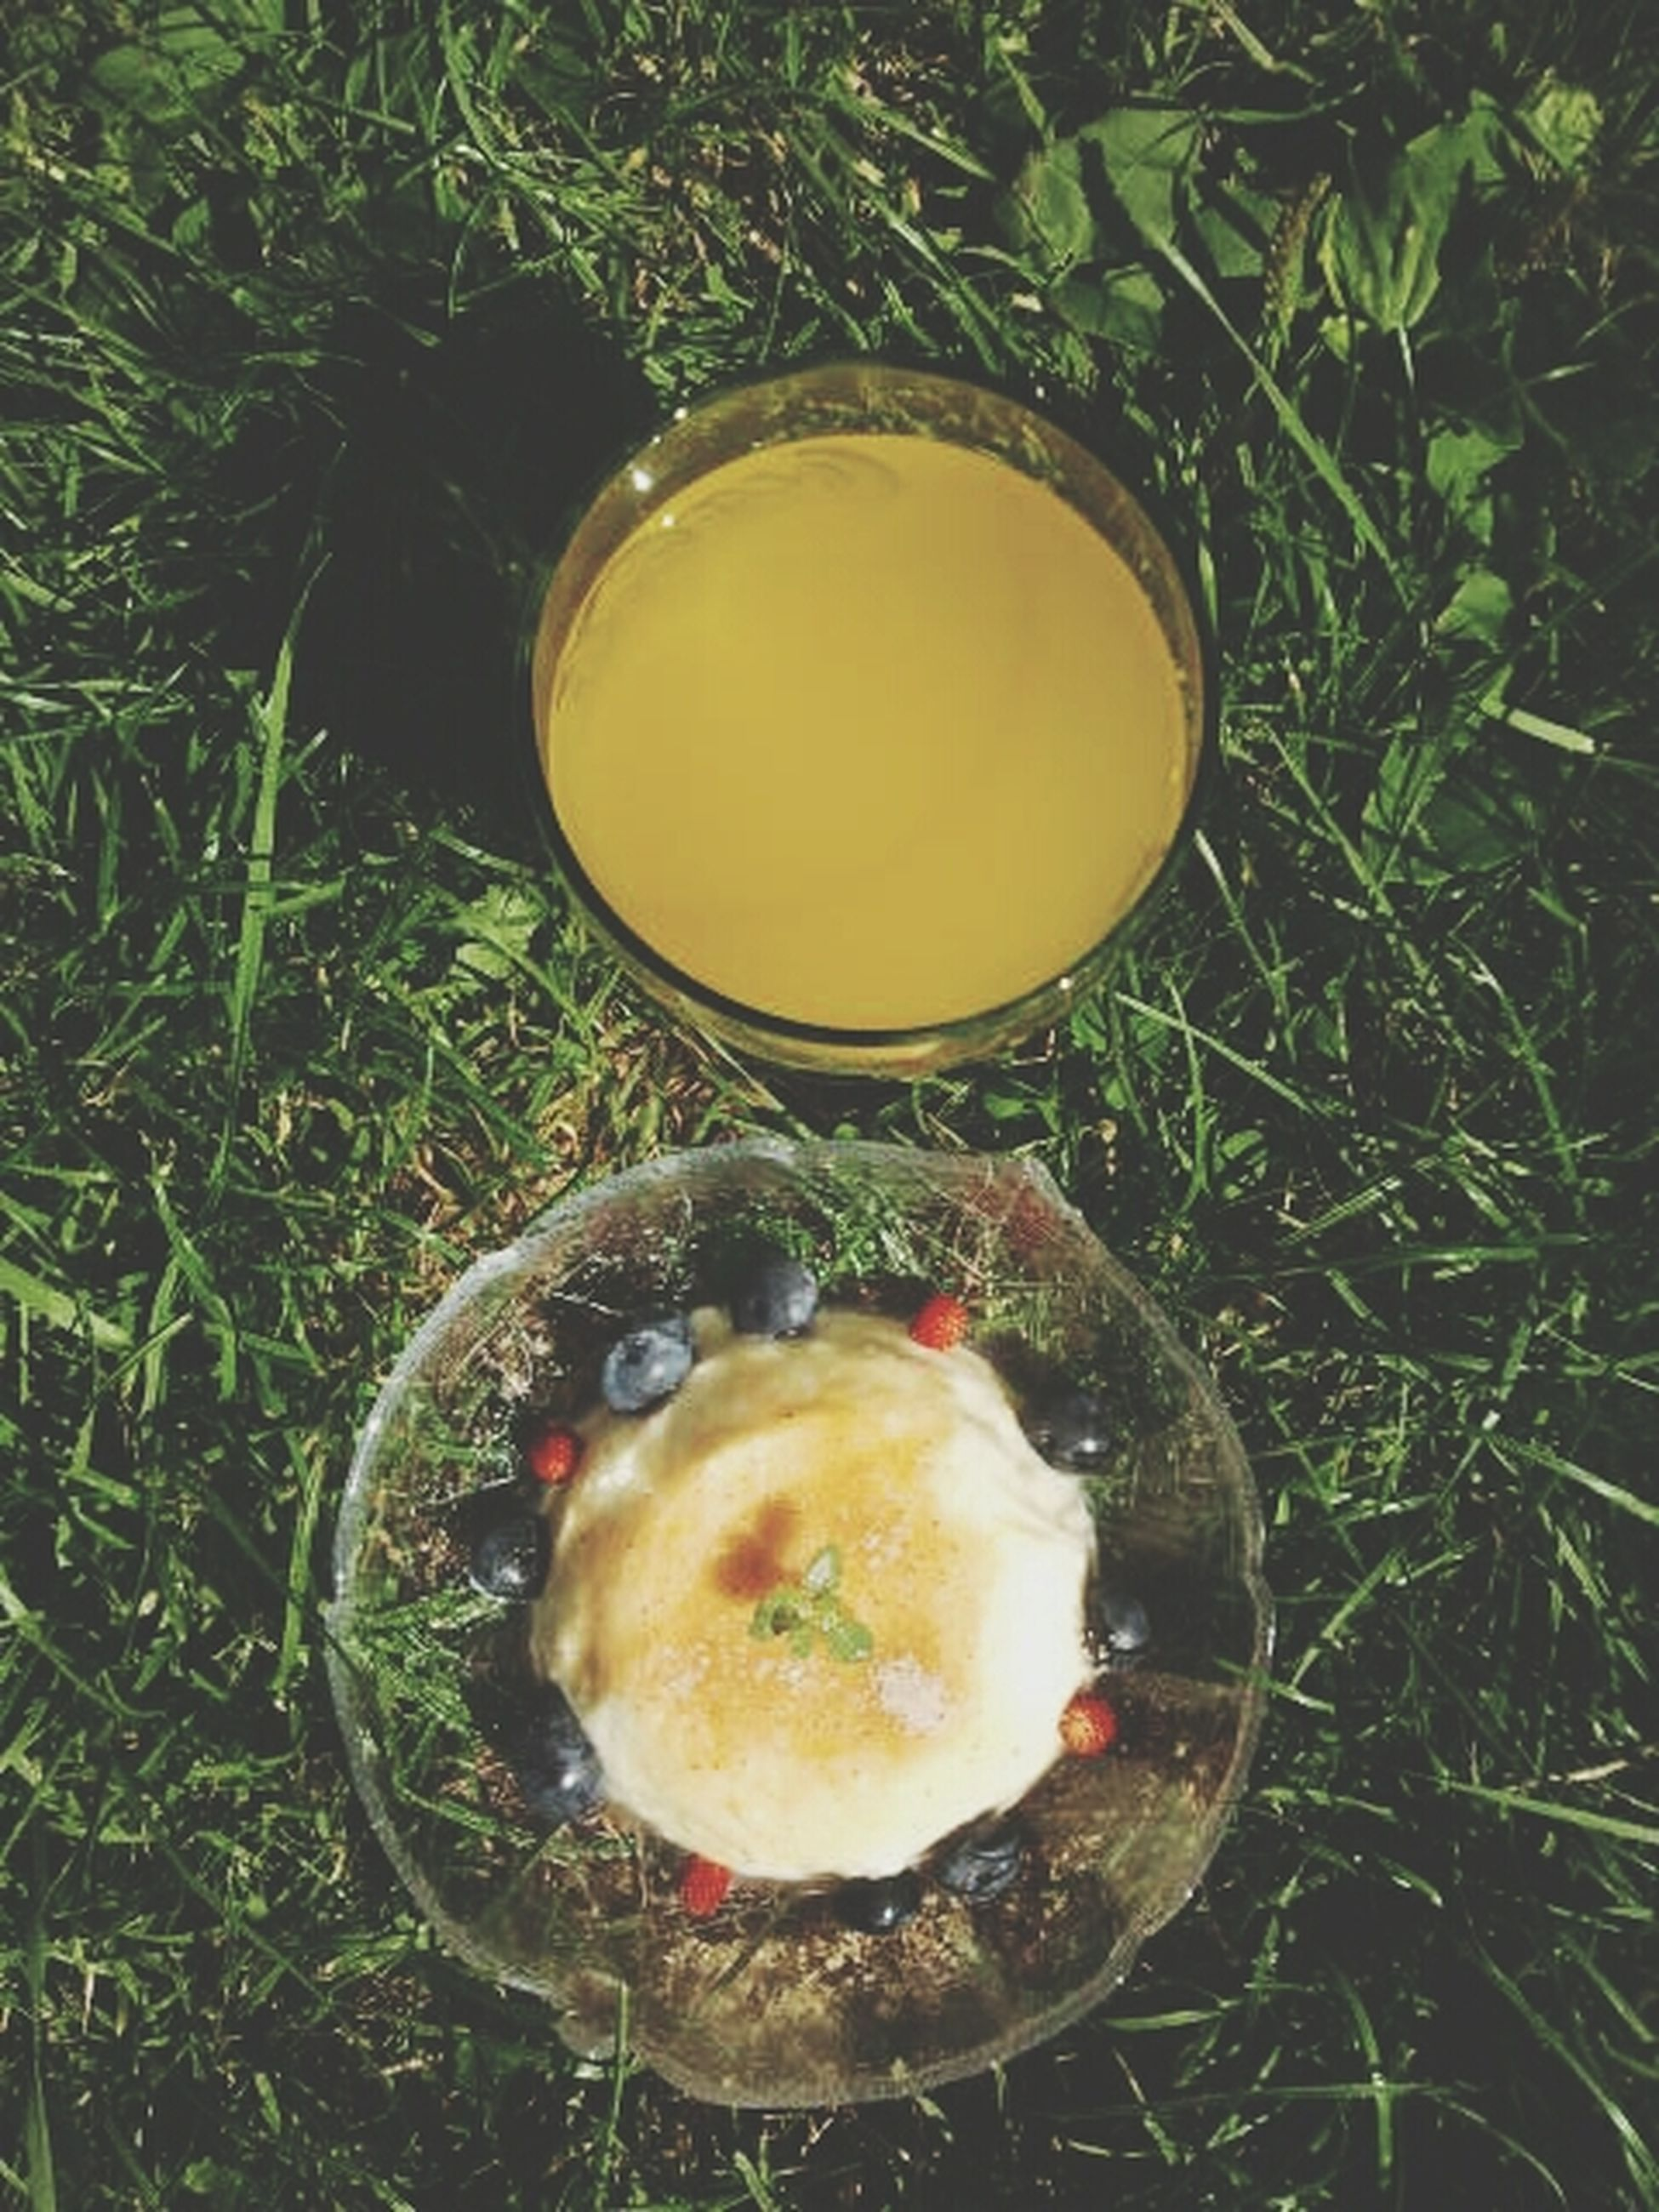 food and drink, food, high angle view, freshness, grass, healthy eating, still life, close-up, fruit, bowl, field, directly above, no people, table, drink, ready-to-eat, refreshment, day, sweet food, egg